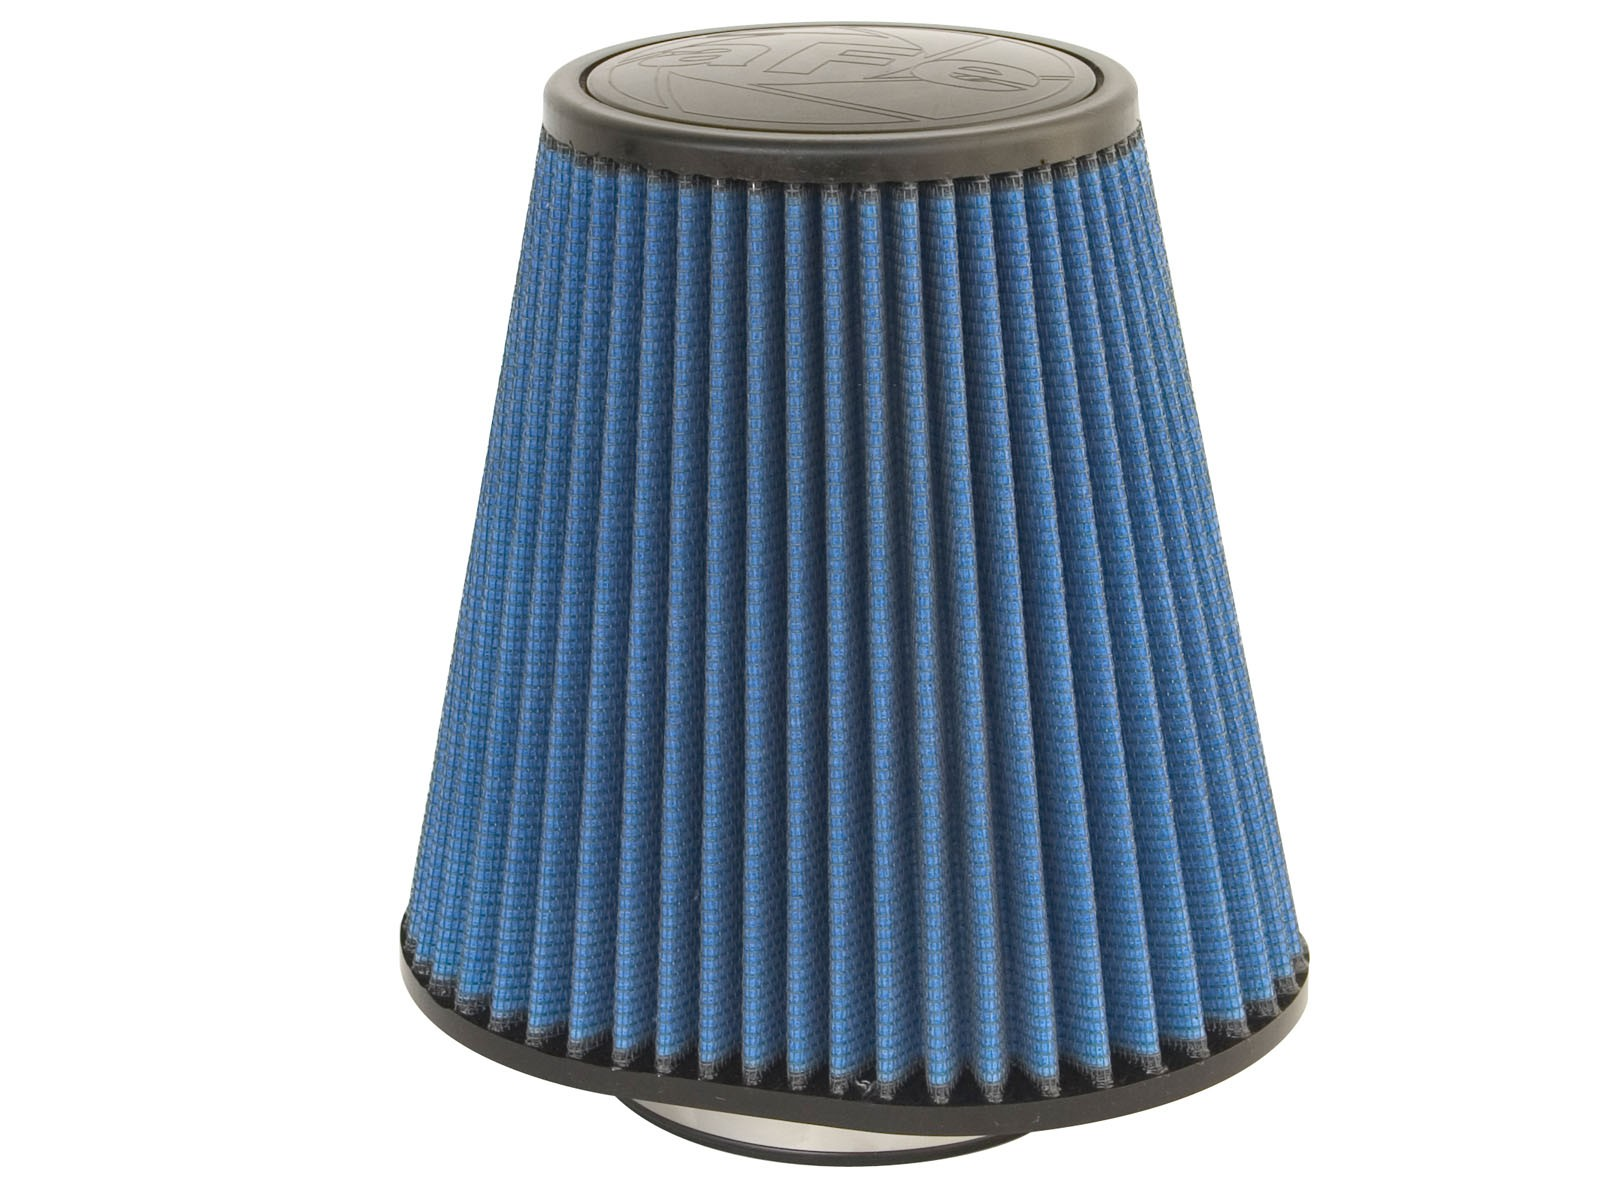 aFe POWER 24-90037 Magnum FLOW Pro 5R Air Filter